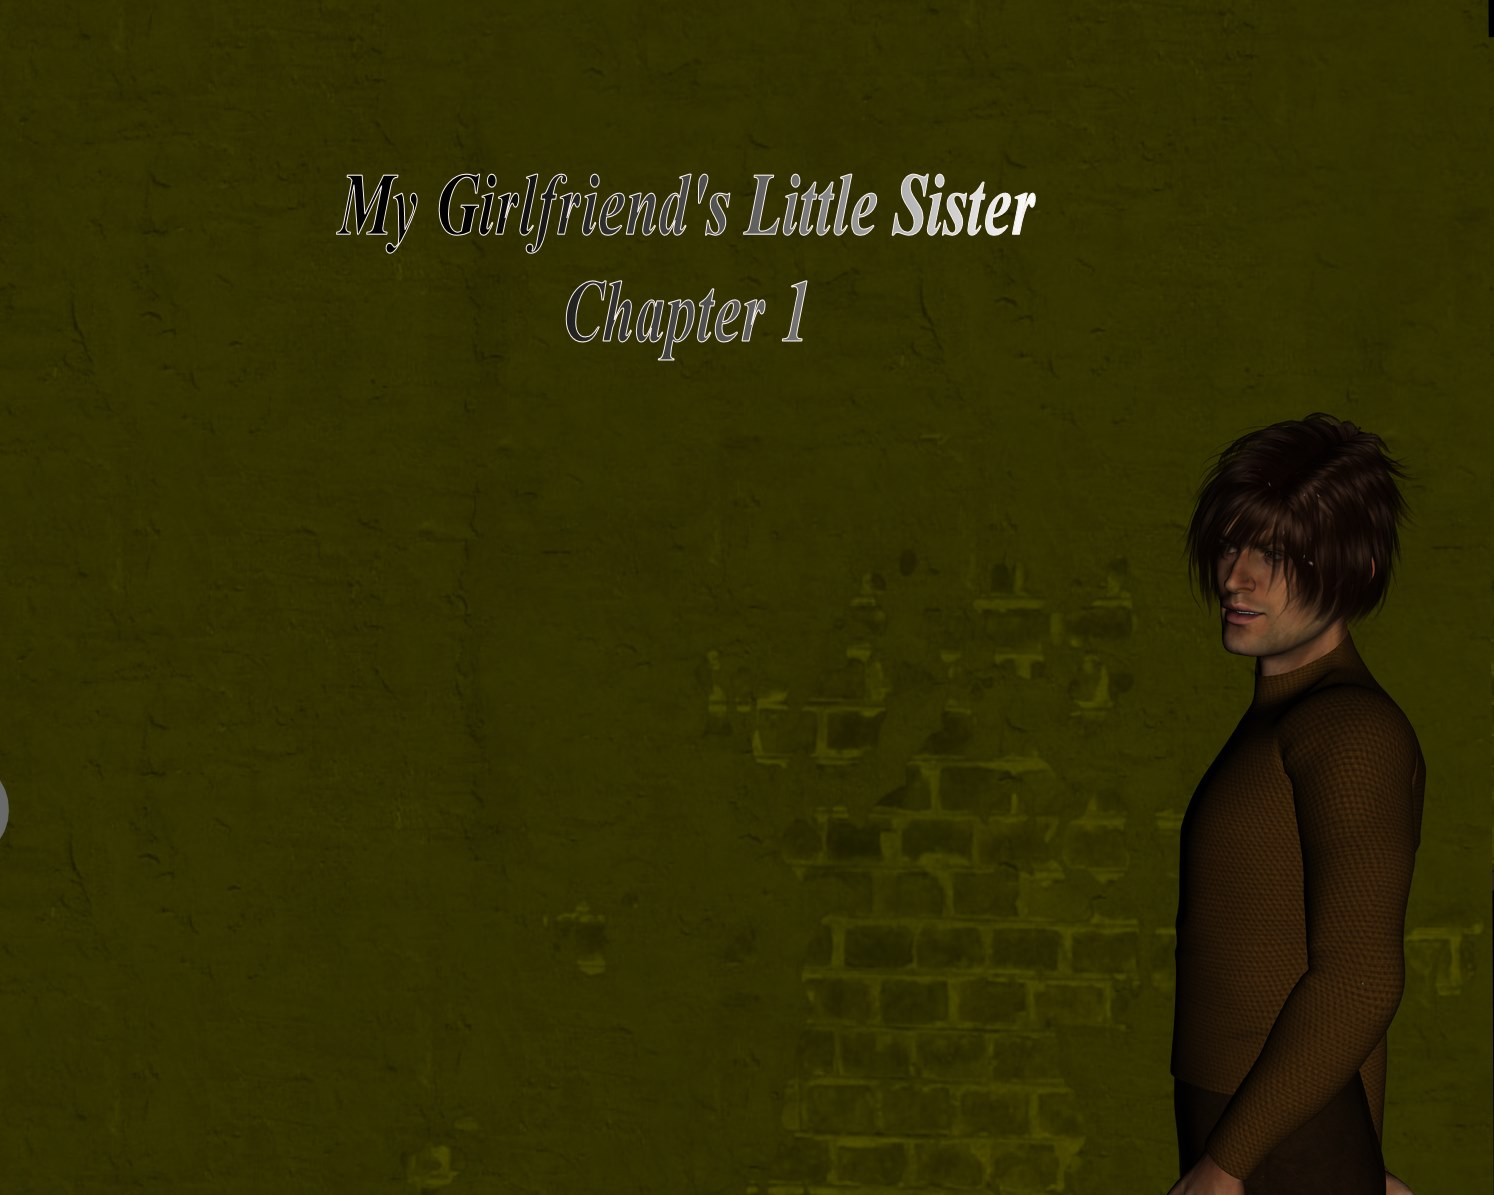 My Girlfriend's Sister by Angelo Michael